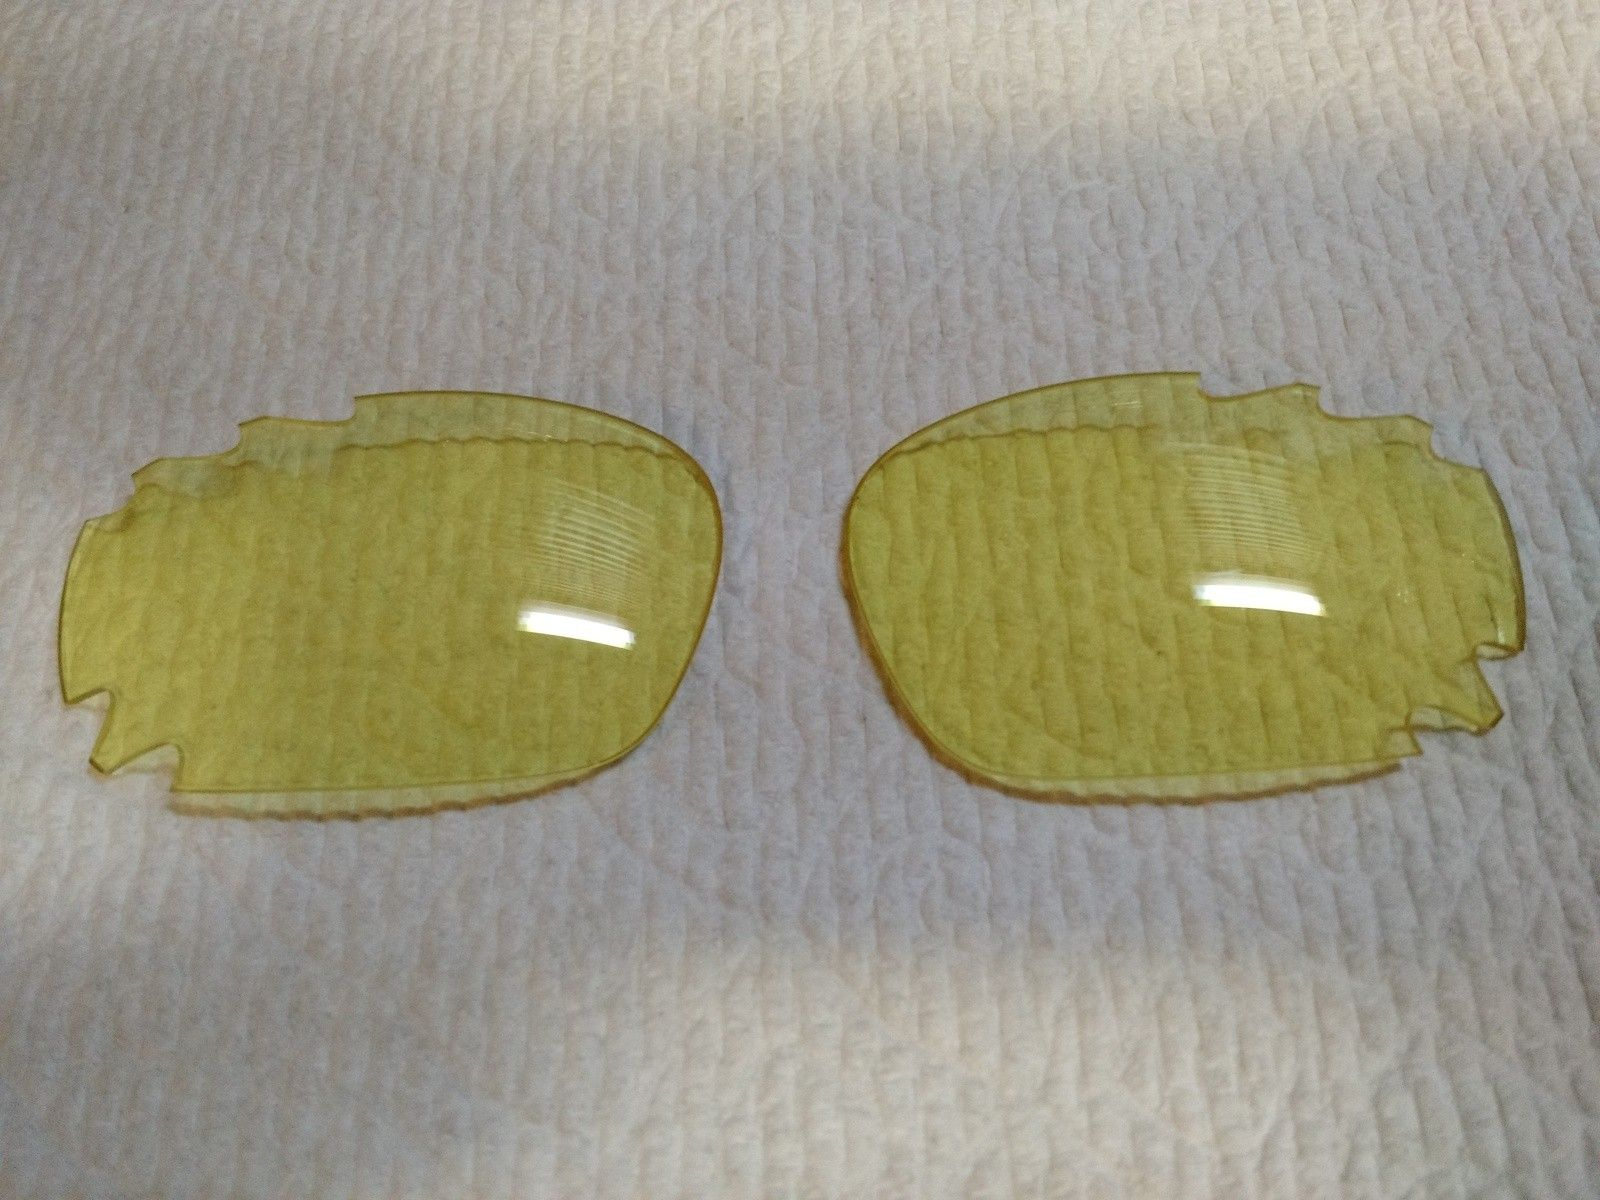 Lenses: Split Jacket yellow, Jawbone/Racing Jacket yellow & grey - IMG_20150213_231715353.jpg